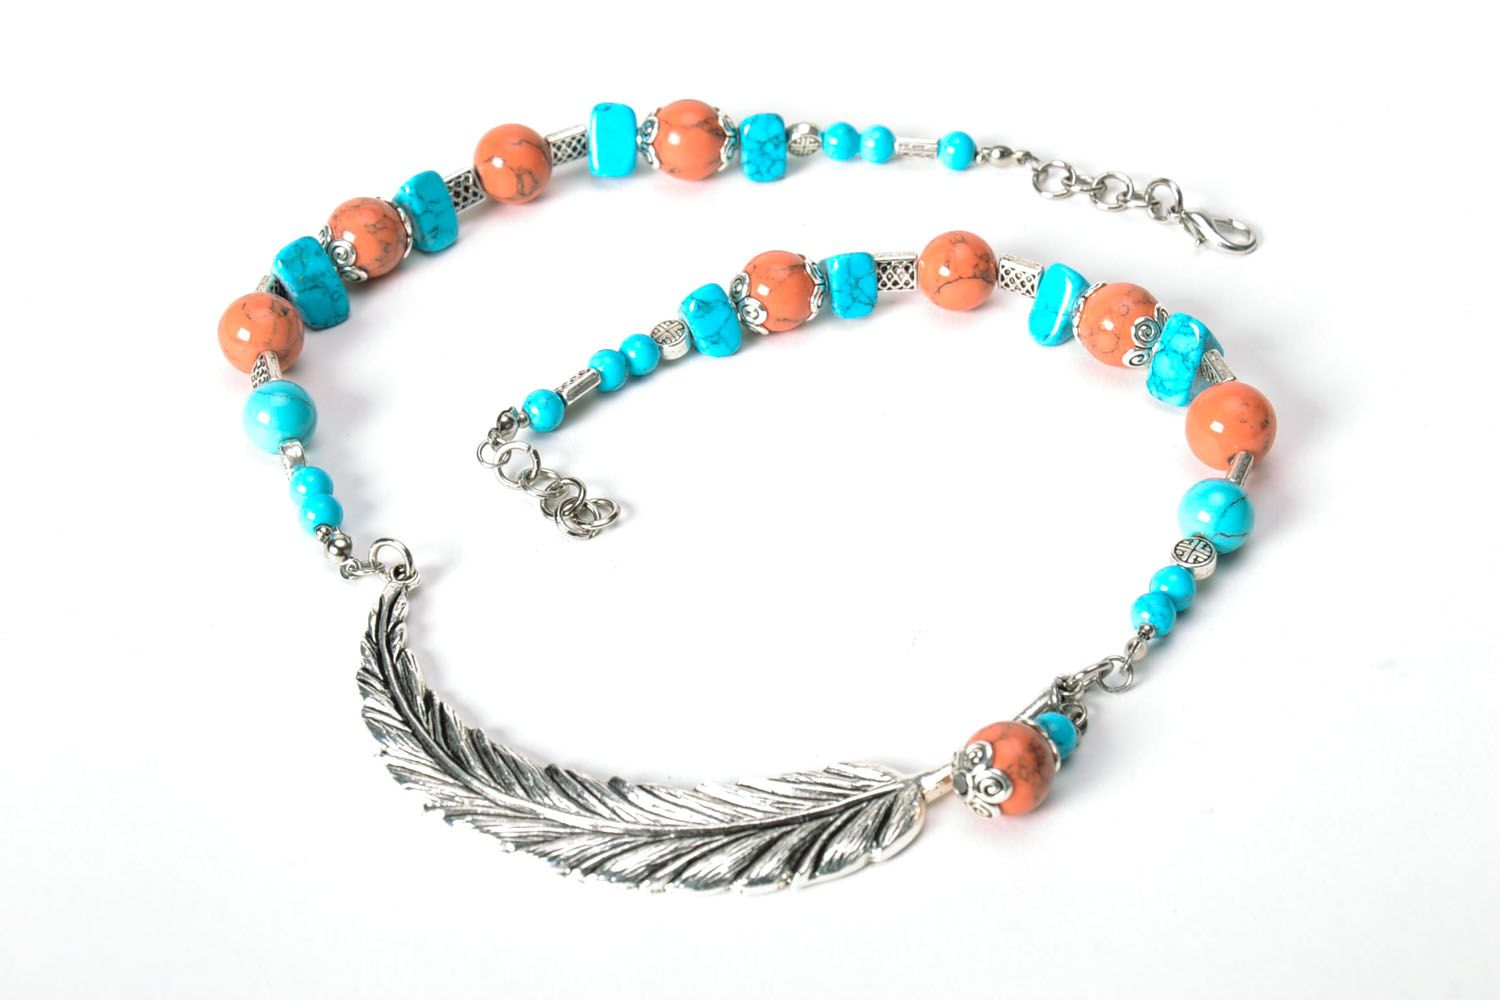 Necklace made of turquoise  photo 5